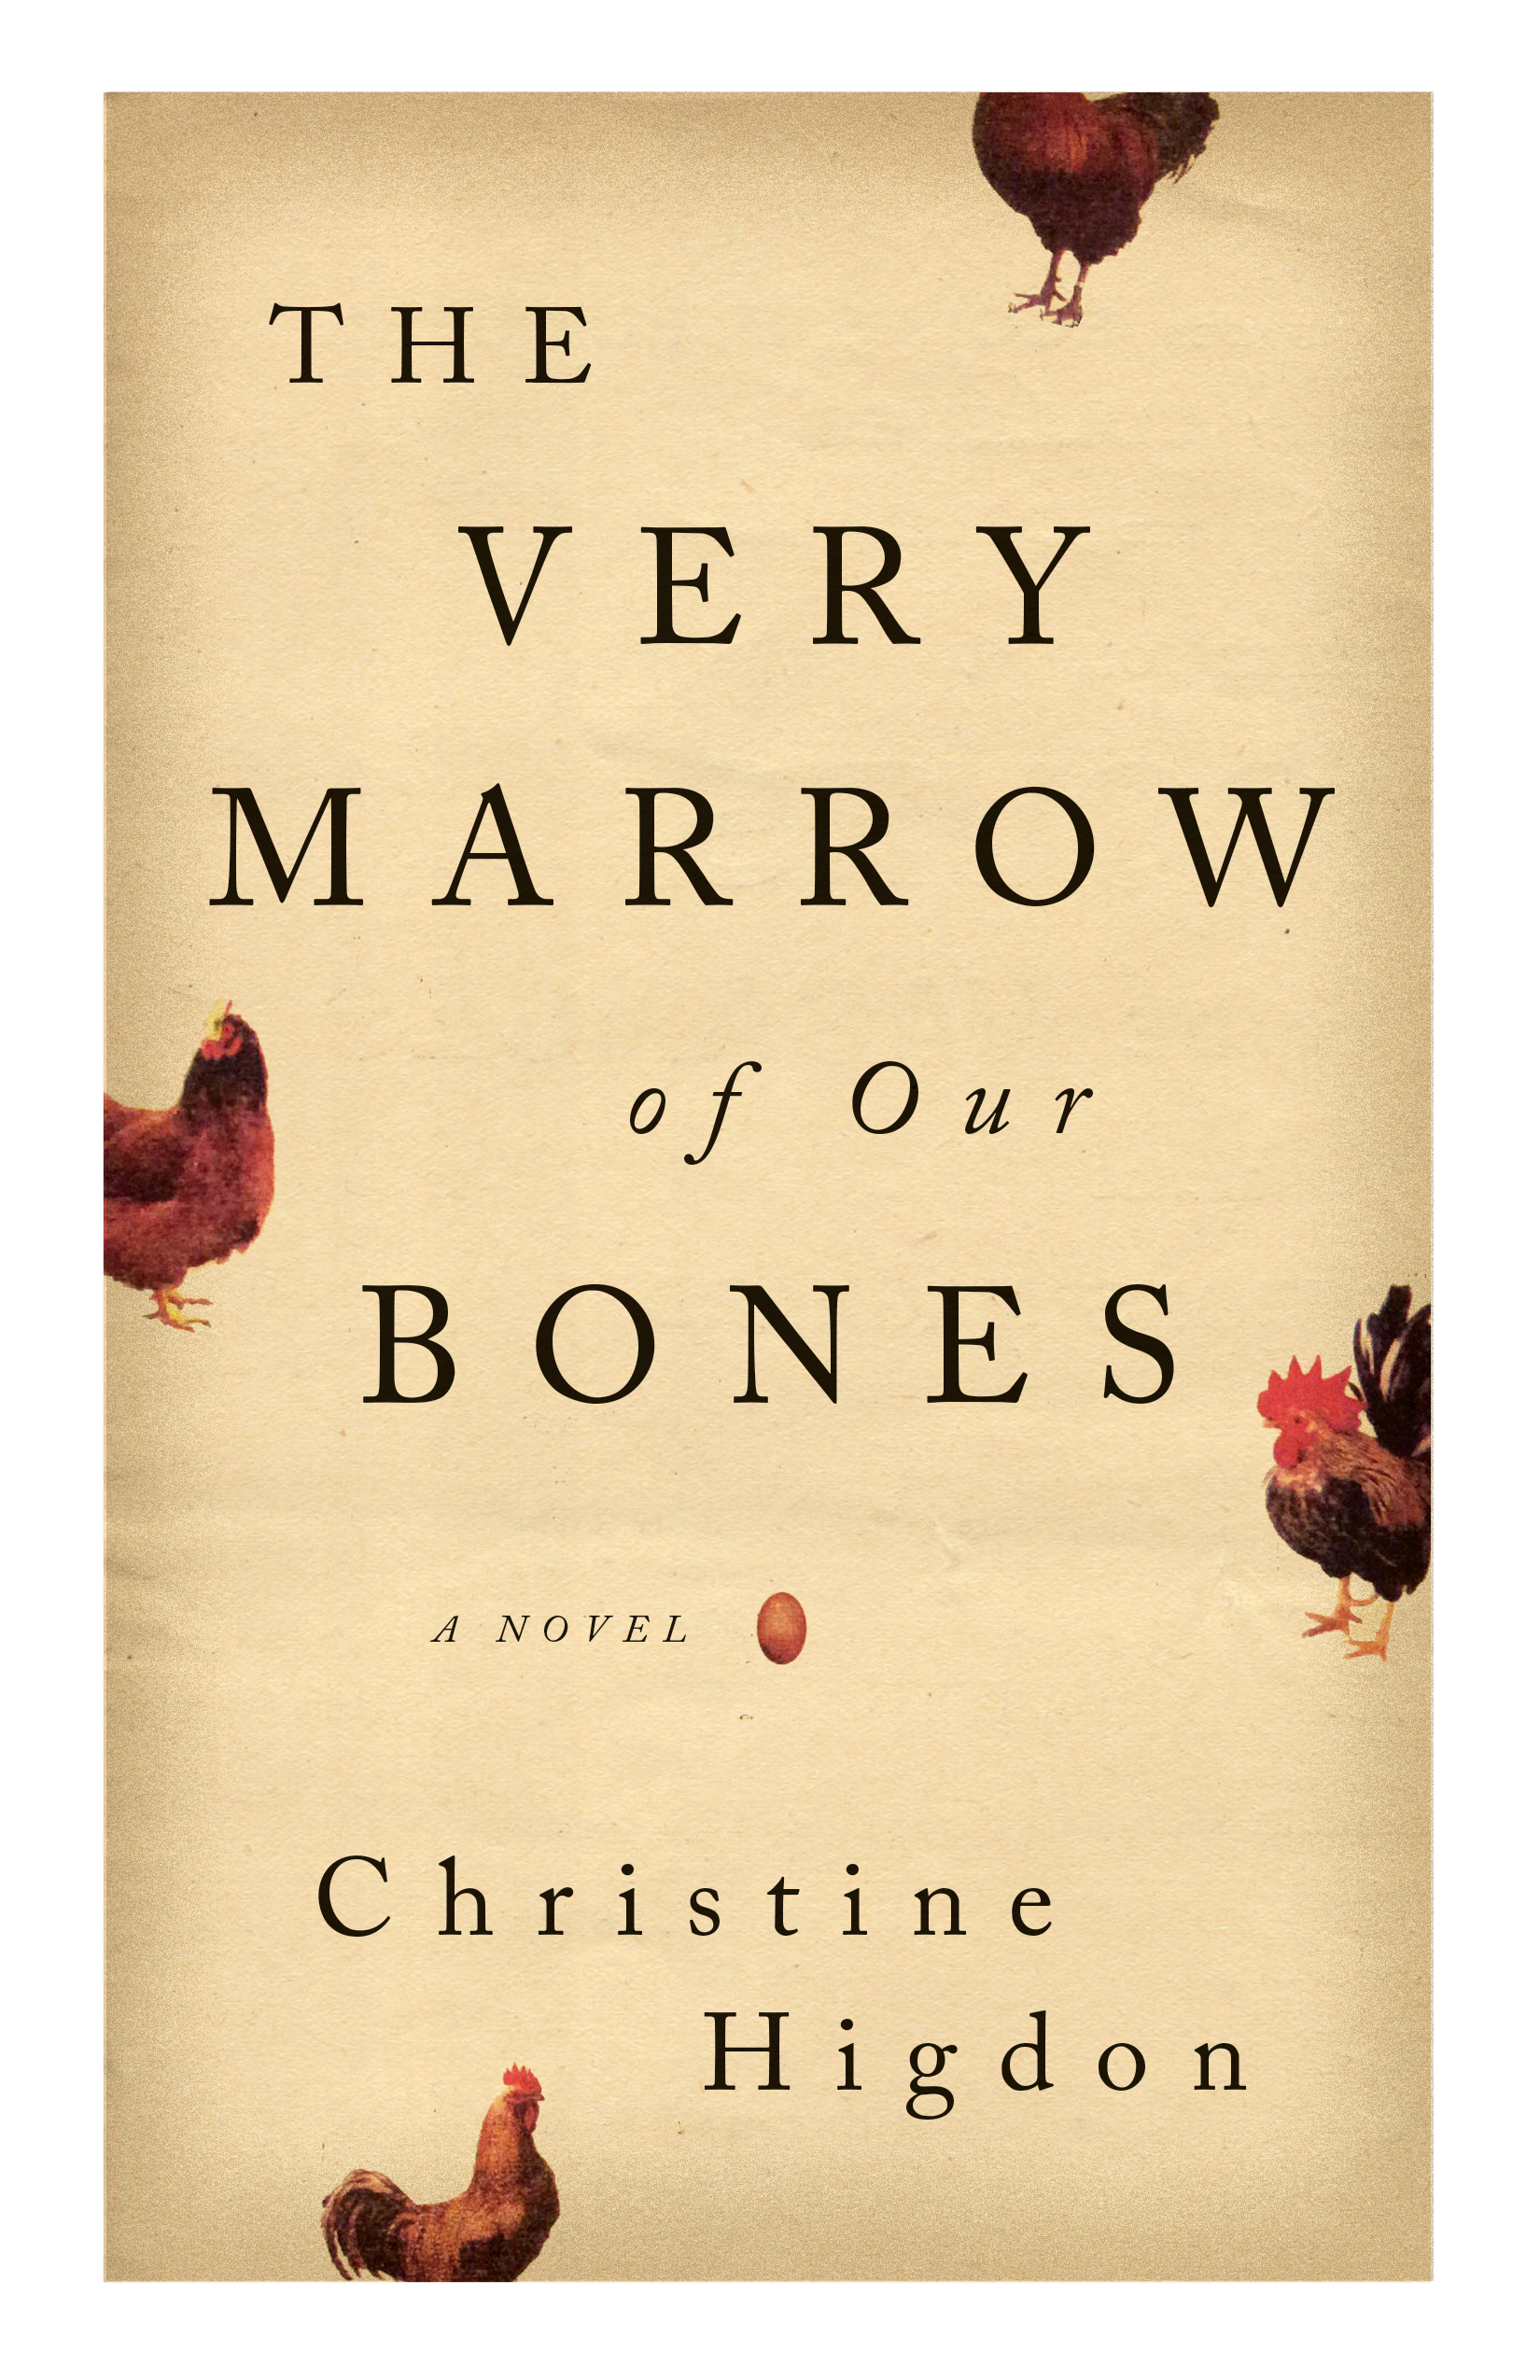 The Very Marrow of Our Bones